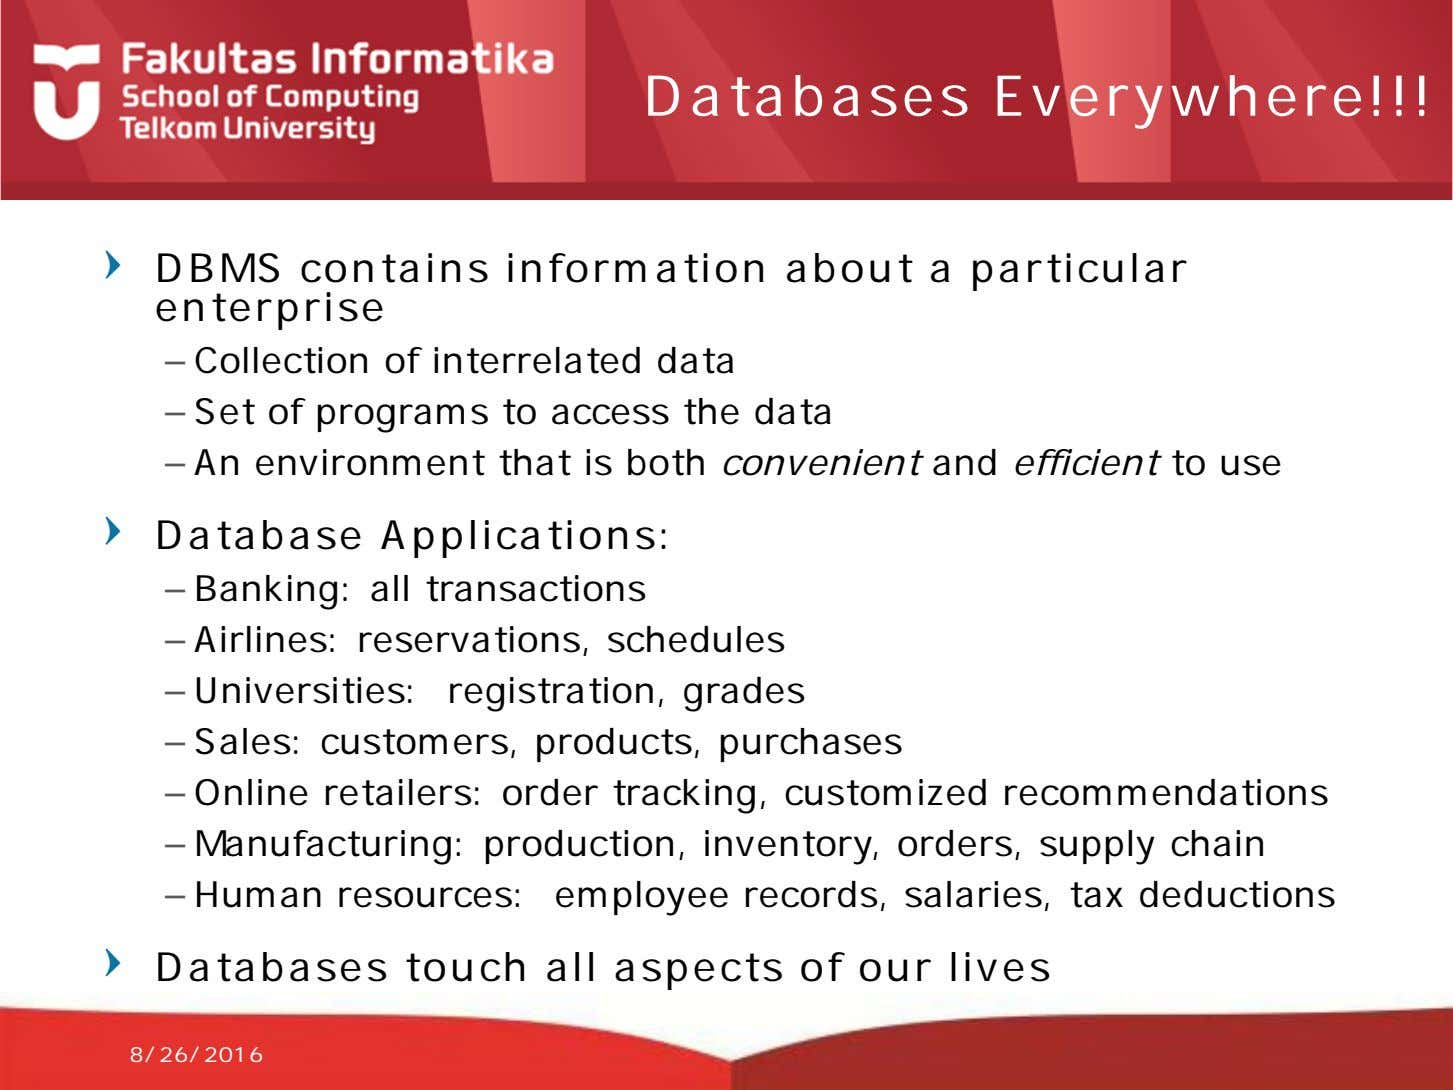 Databases Everywhere!!! DBMS contains information about a particular enterprise – Collection of interrelated data